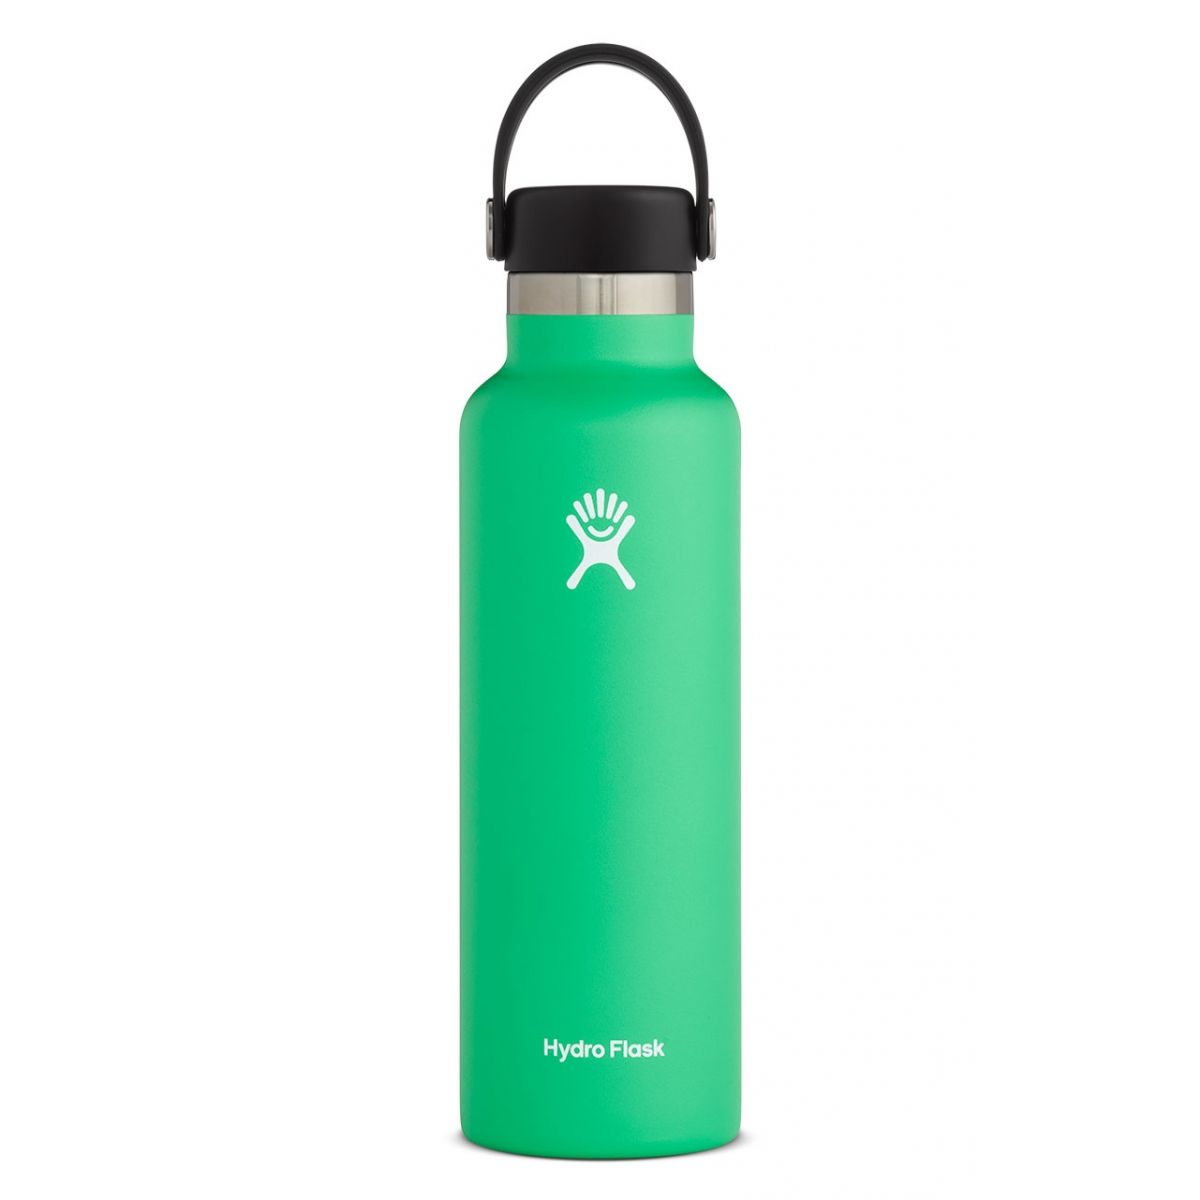 Image For Hydroflask Insulated Water Bottle, Spearmint